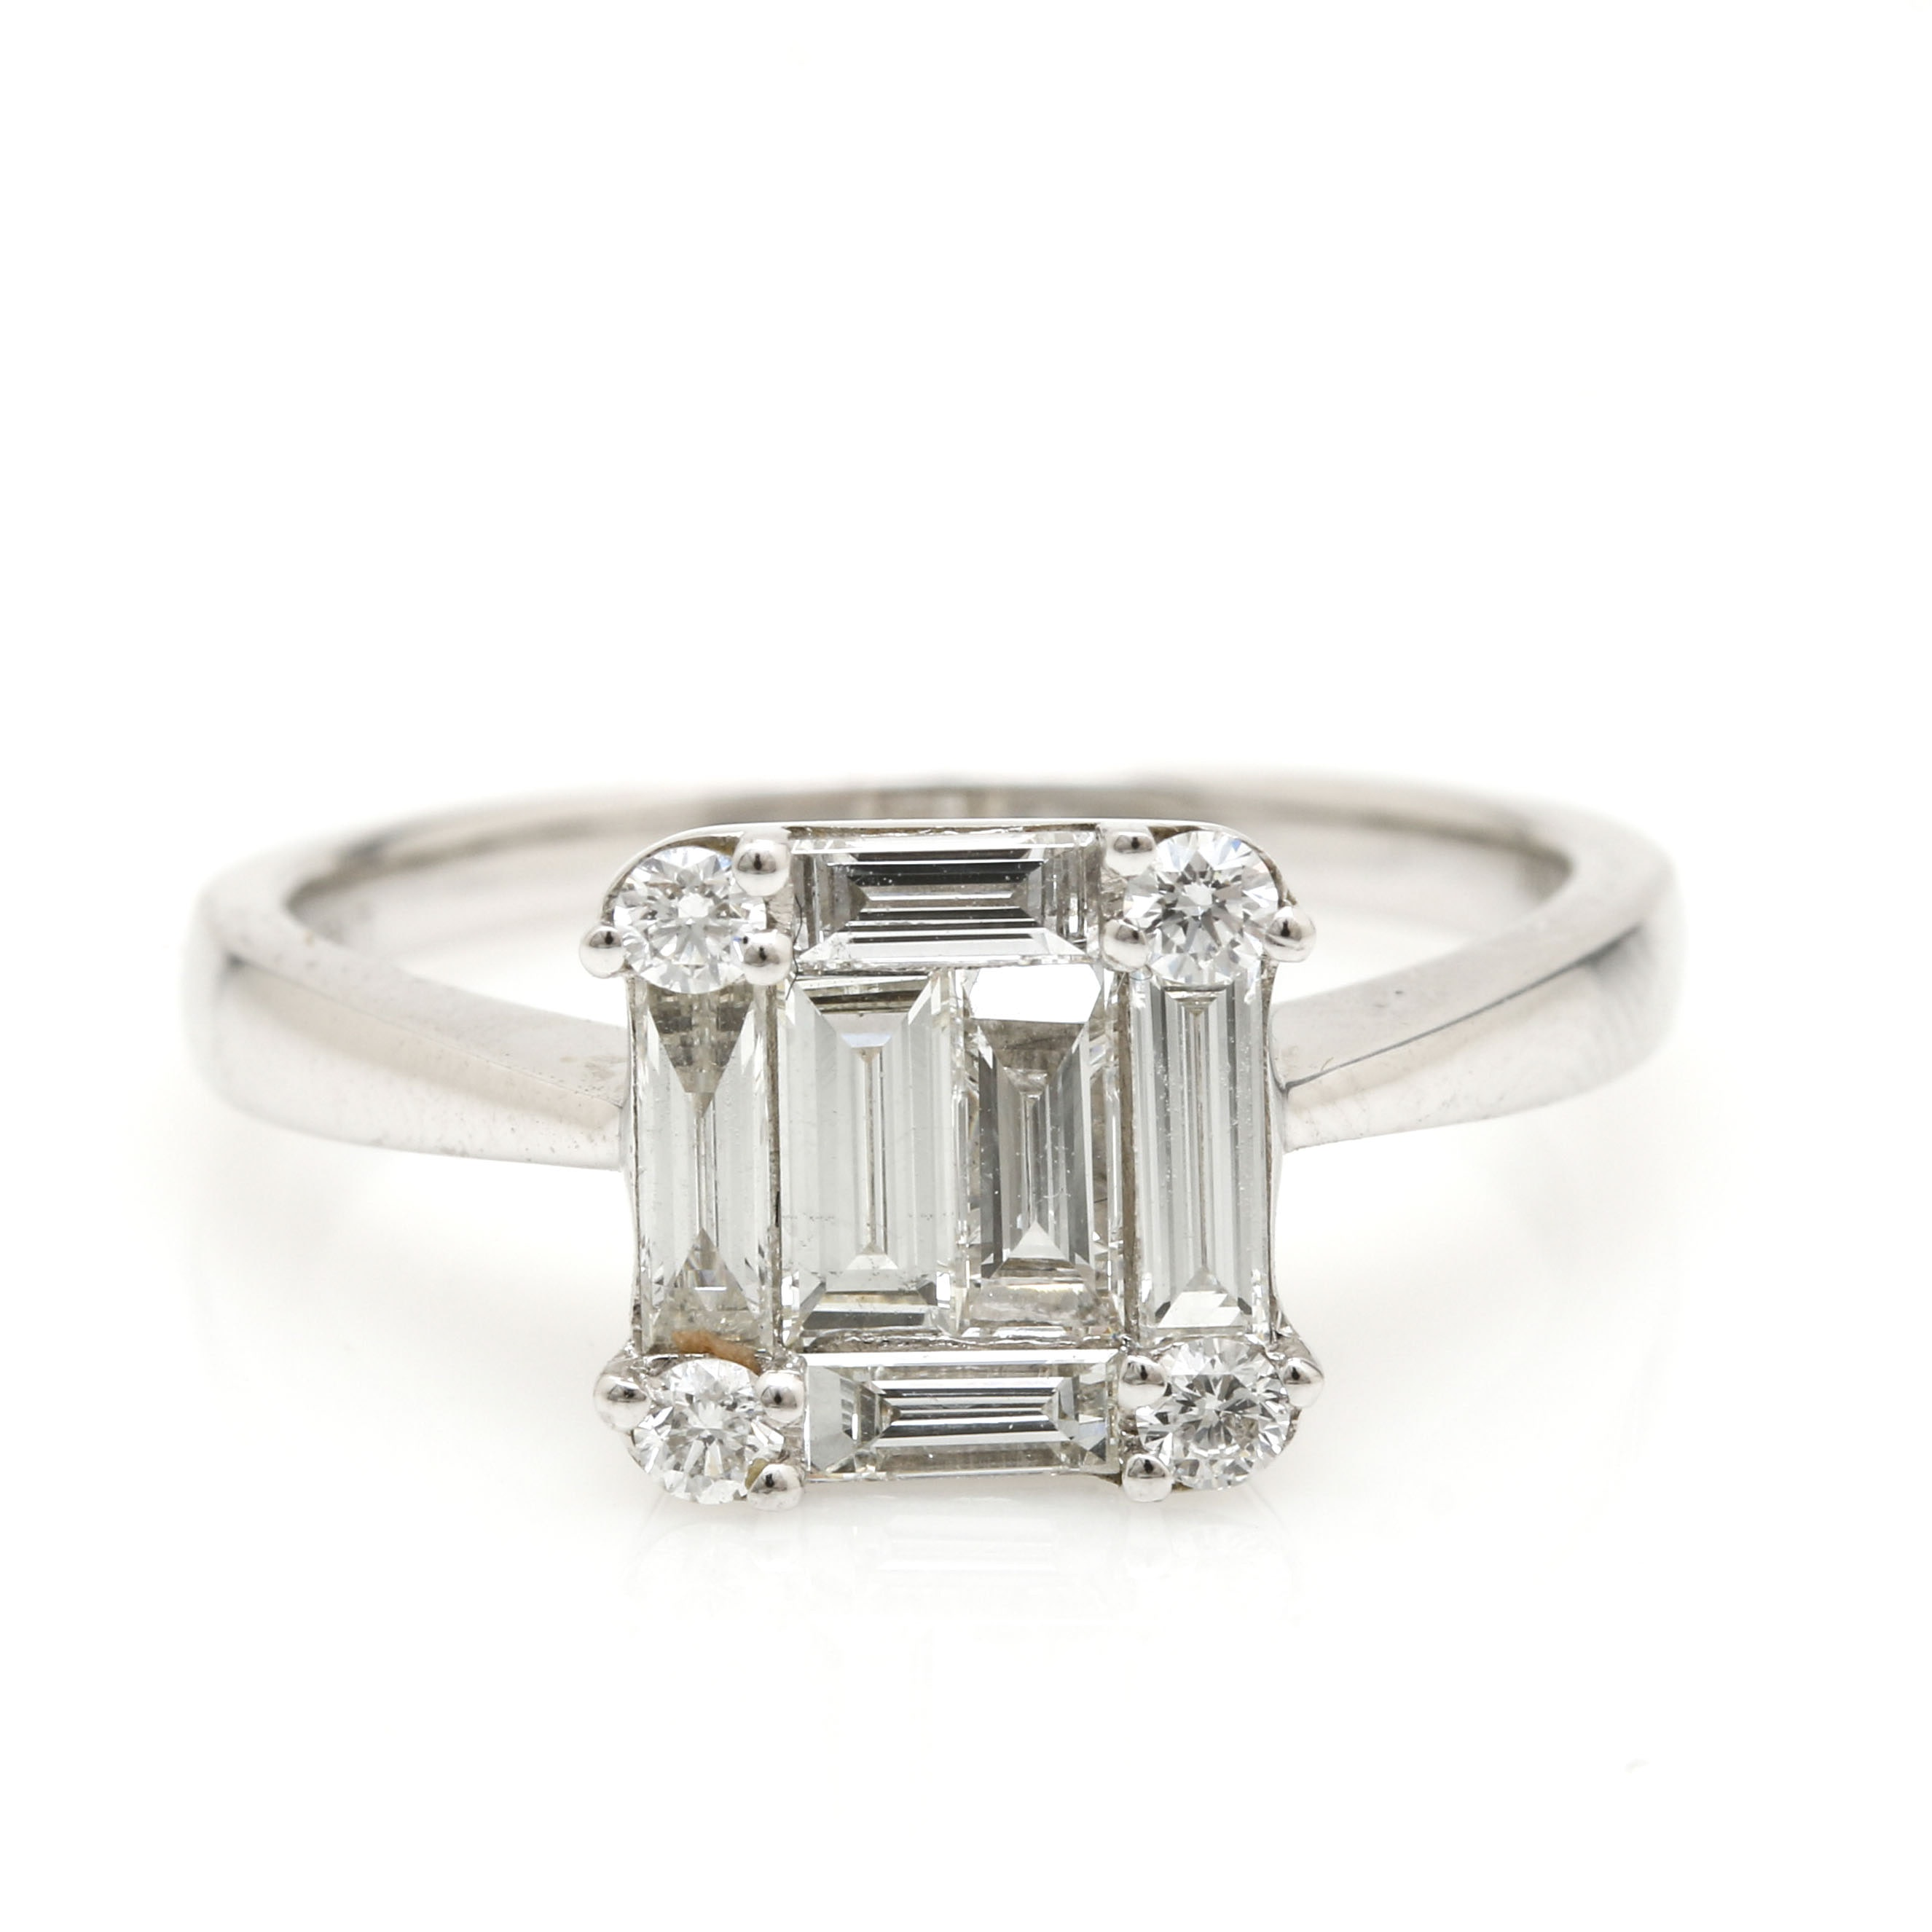 18K White Gold 1.07 CTW Diamond Ring